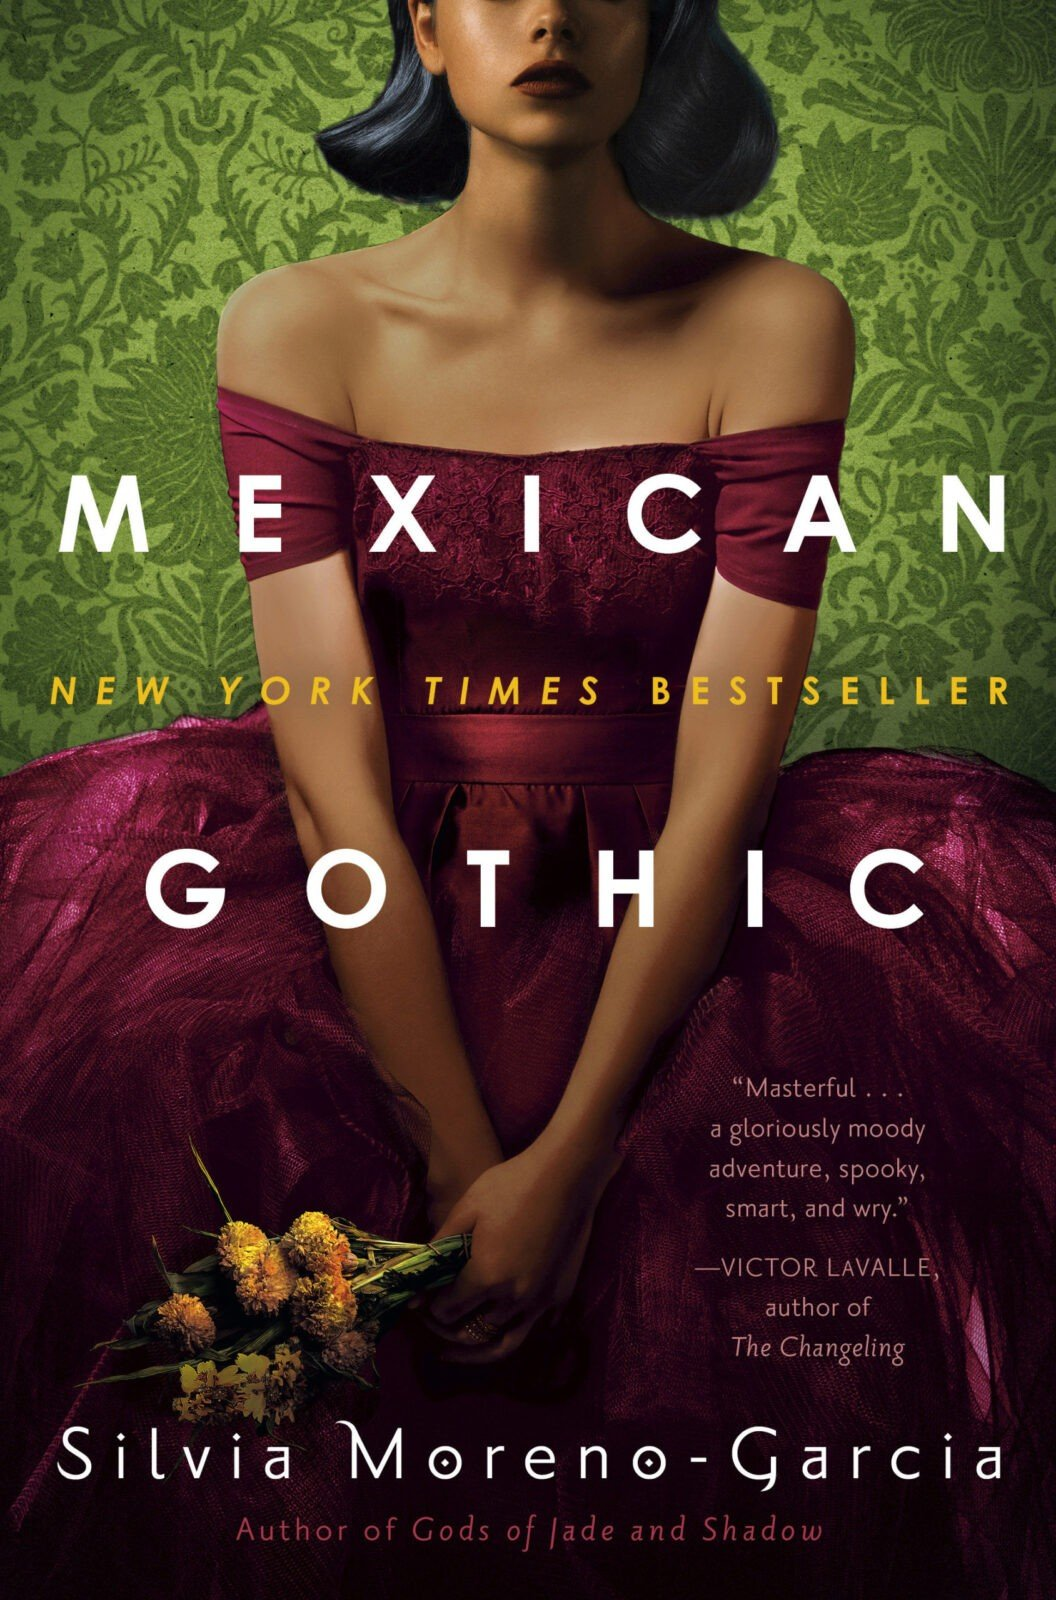 Mexican Gothic TV adaptation